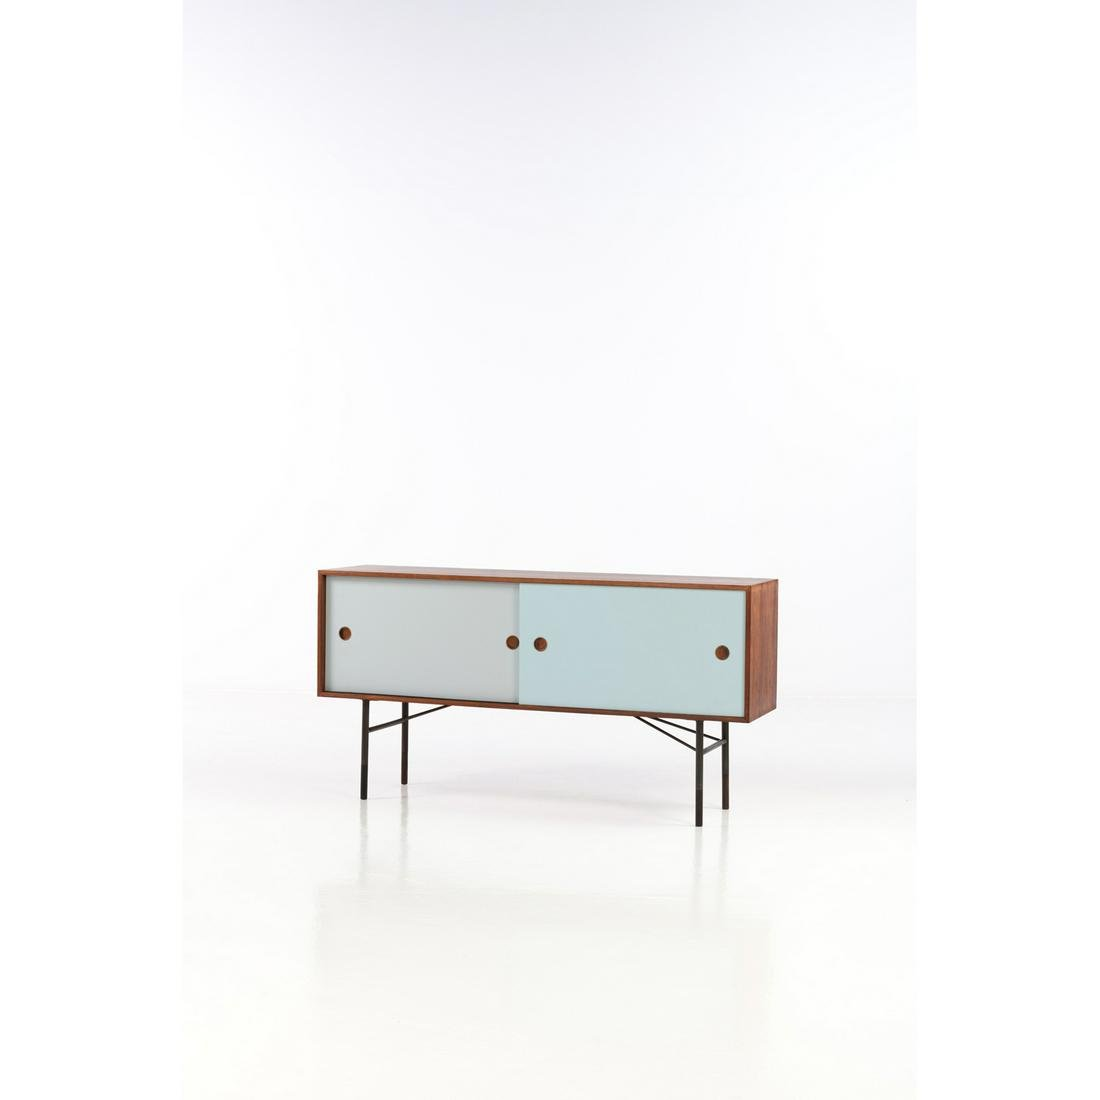 Finn Juhl (1912-1989) Sideboard Rosewood and painted